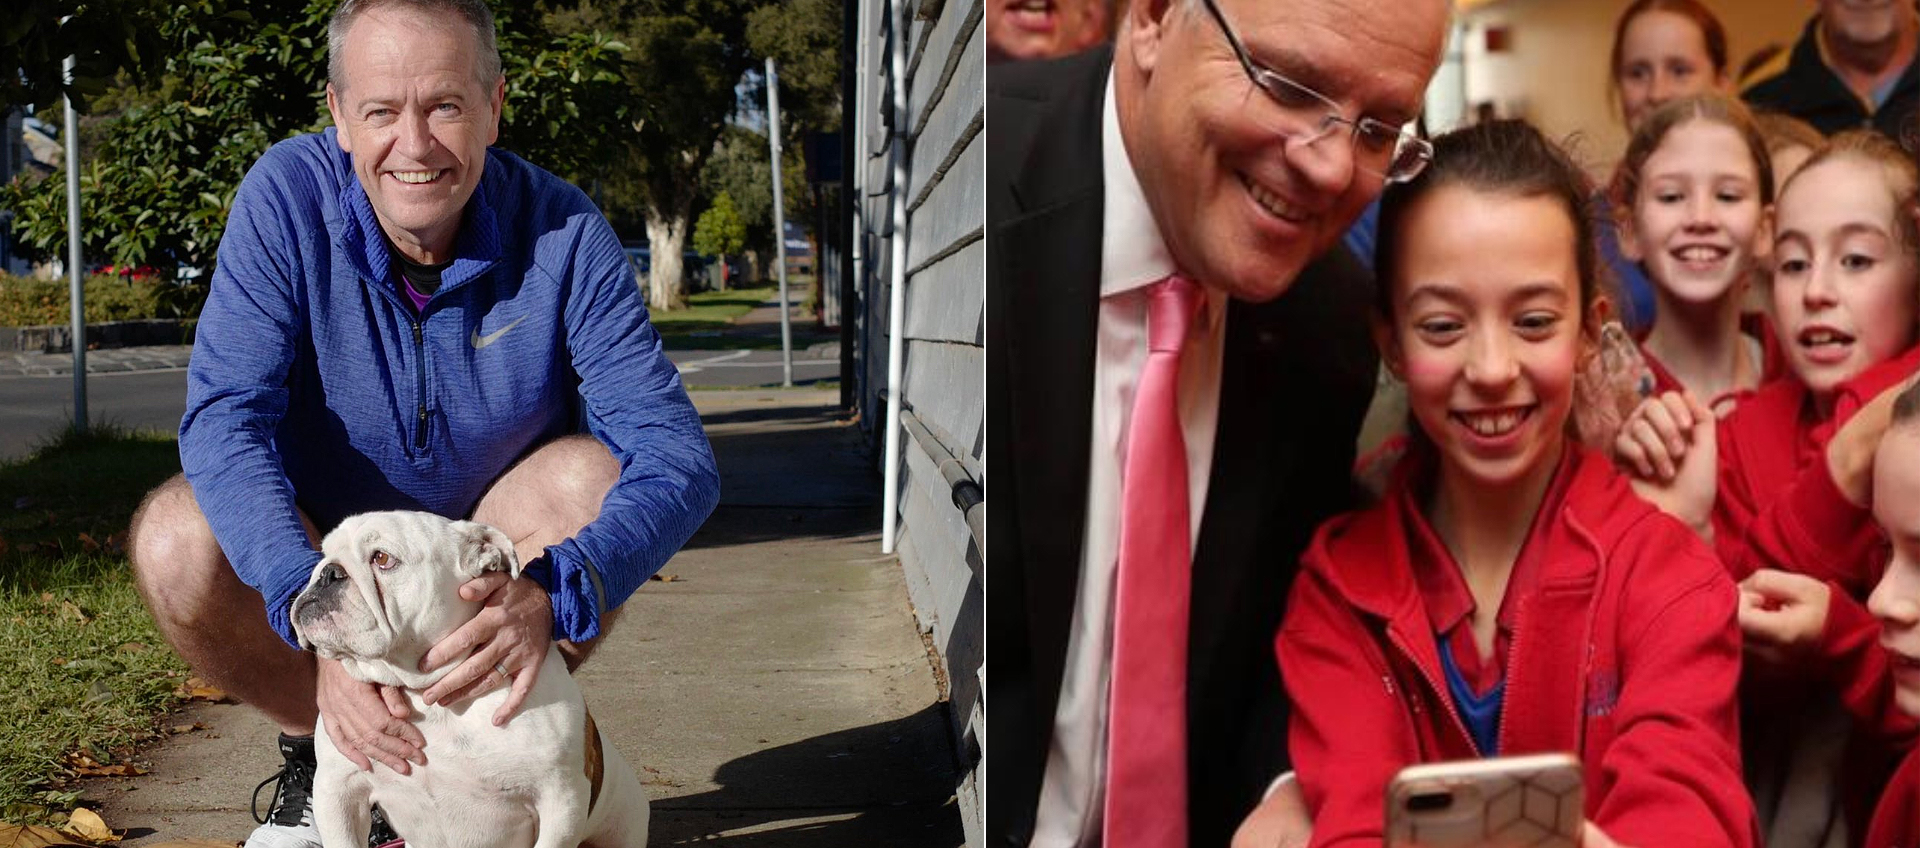 Bill Shorten and Scott Morrison on the campaign trail.